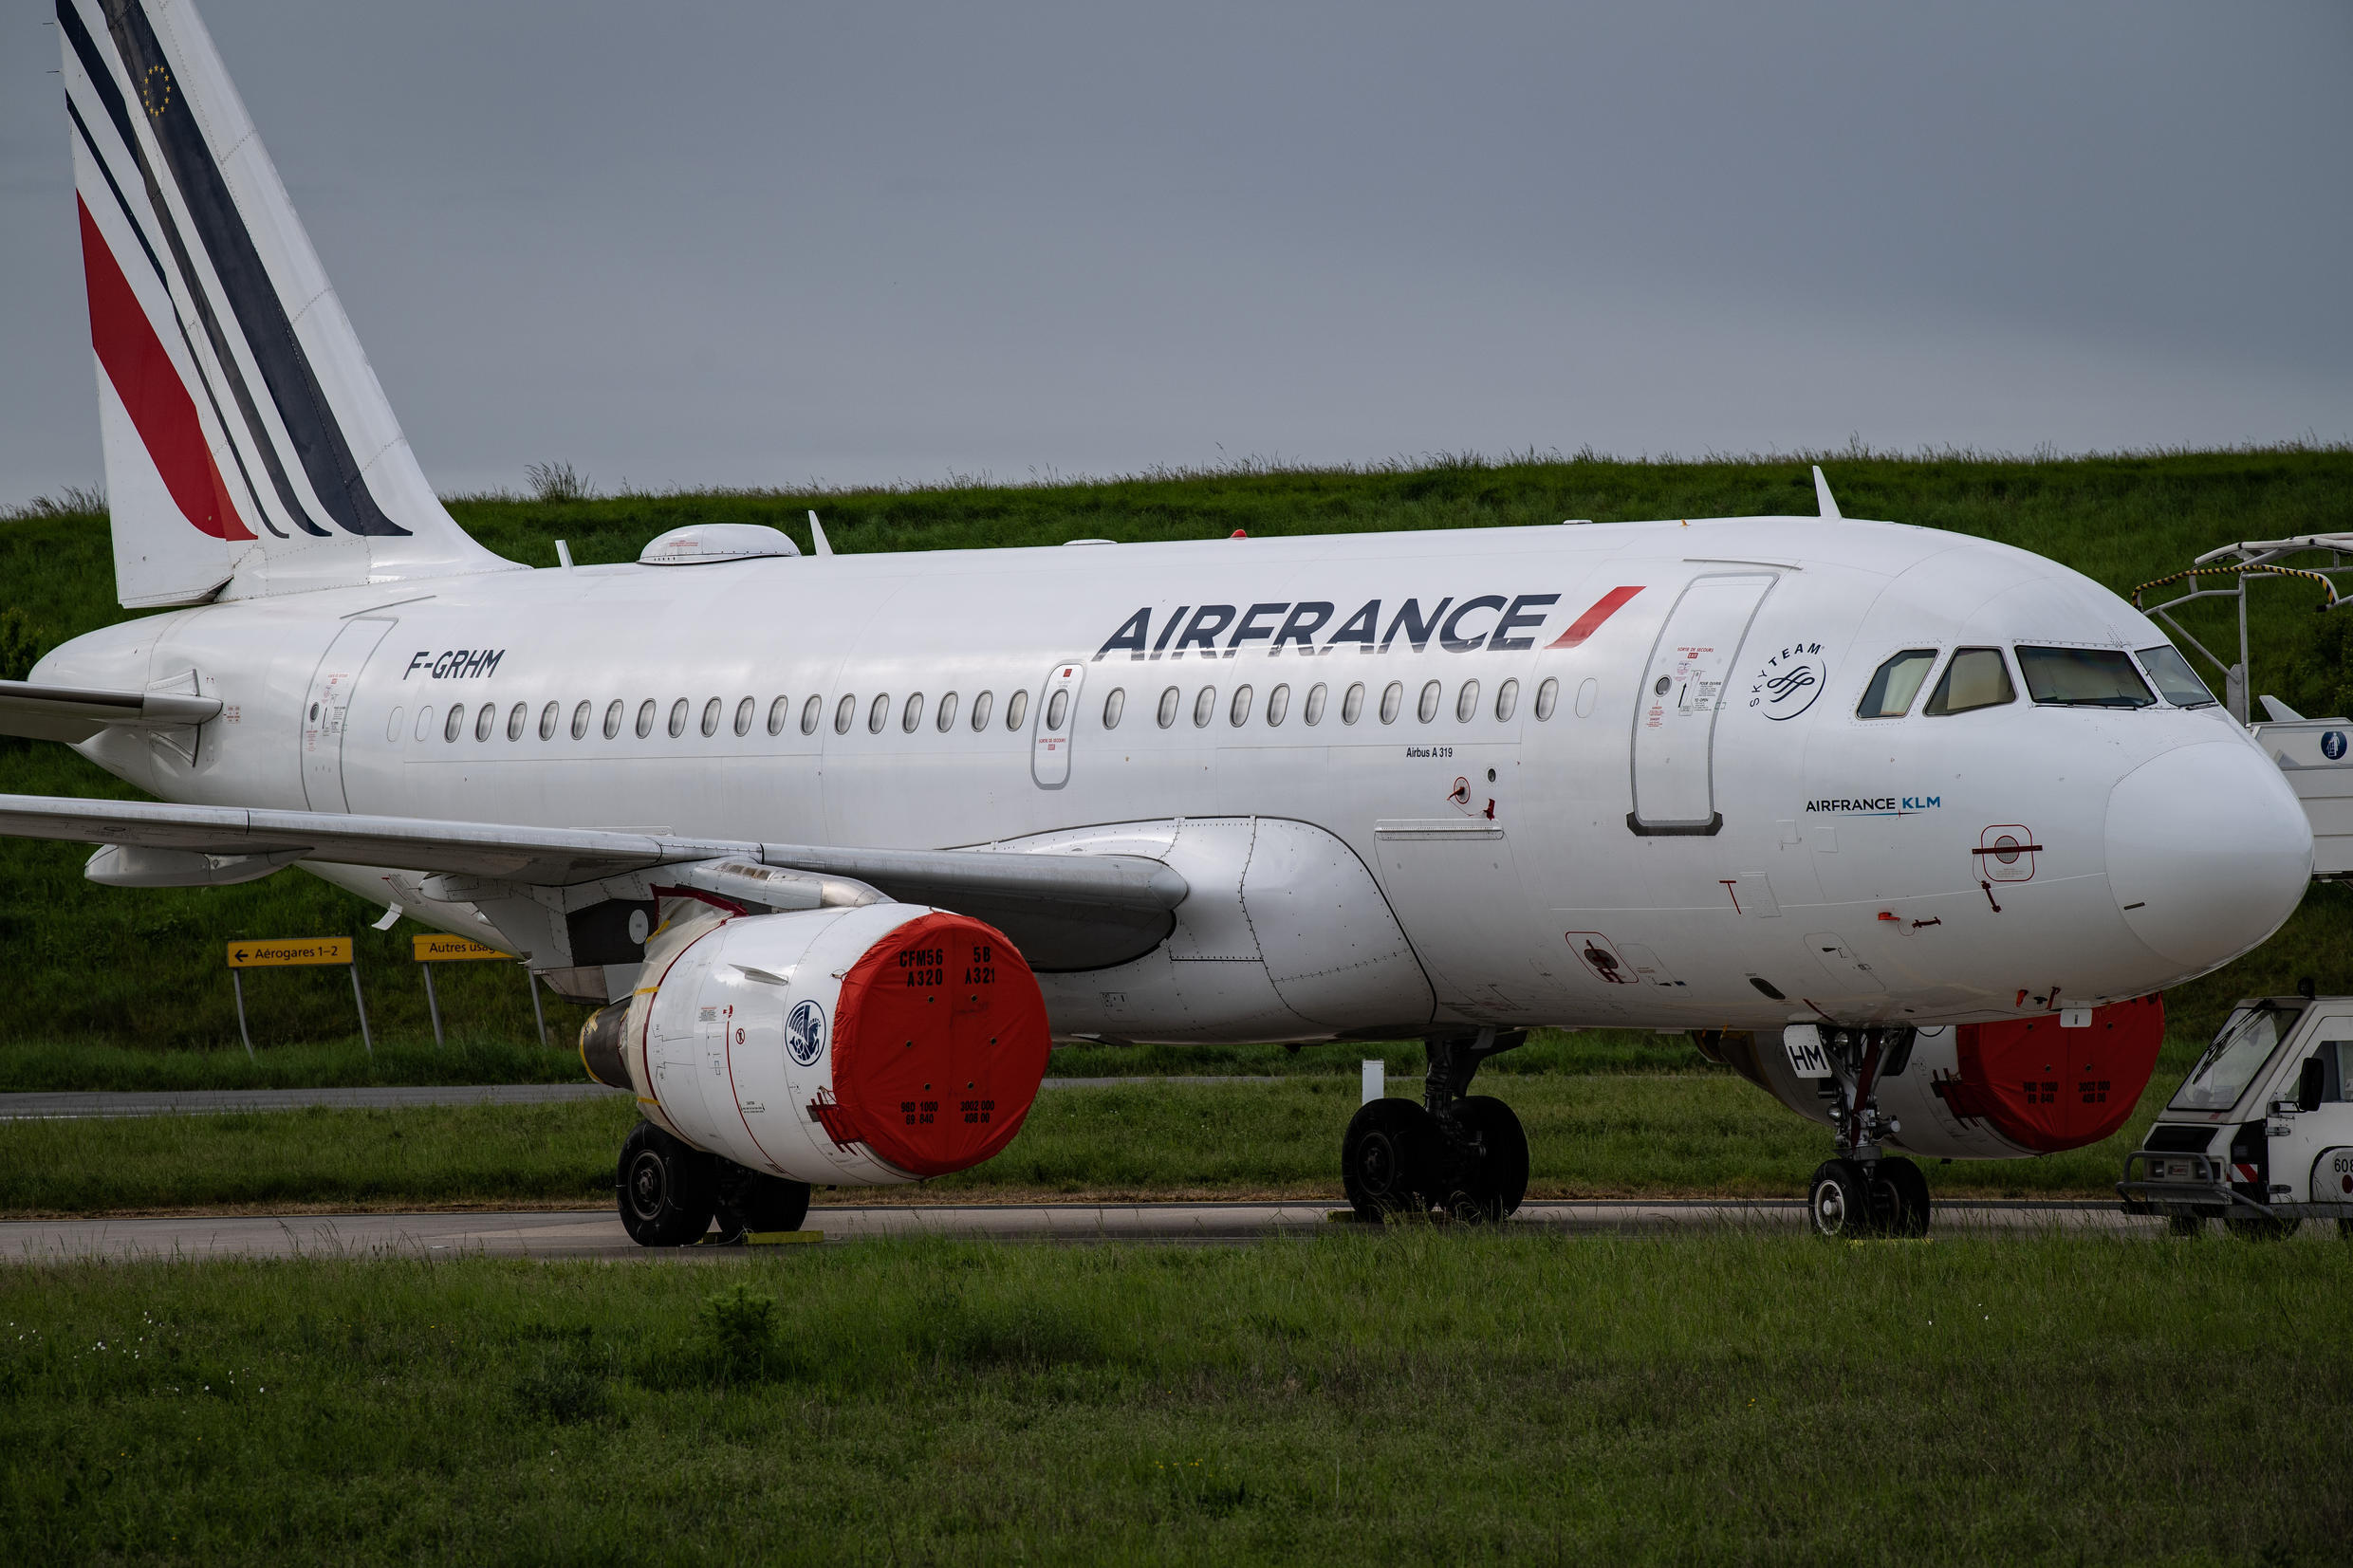 An Air France plane is pictured on the tarmac at Charles de Gaulle airport near Paris on April 30, 2020.